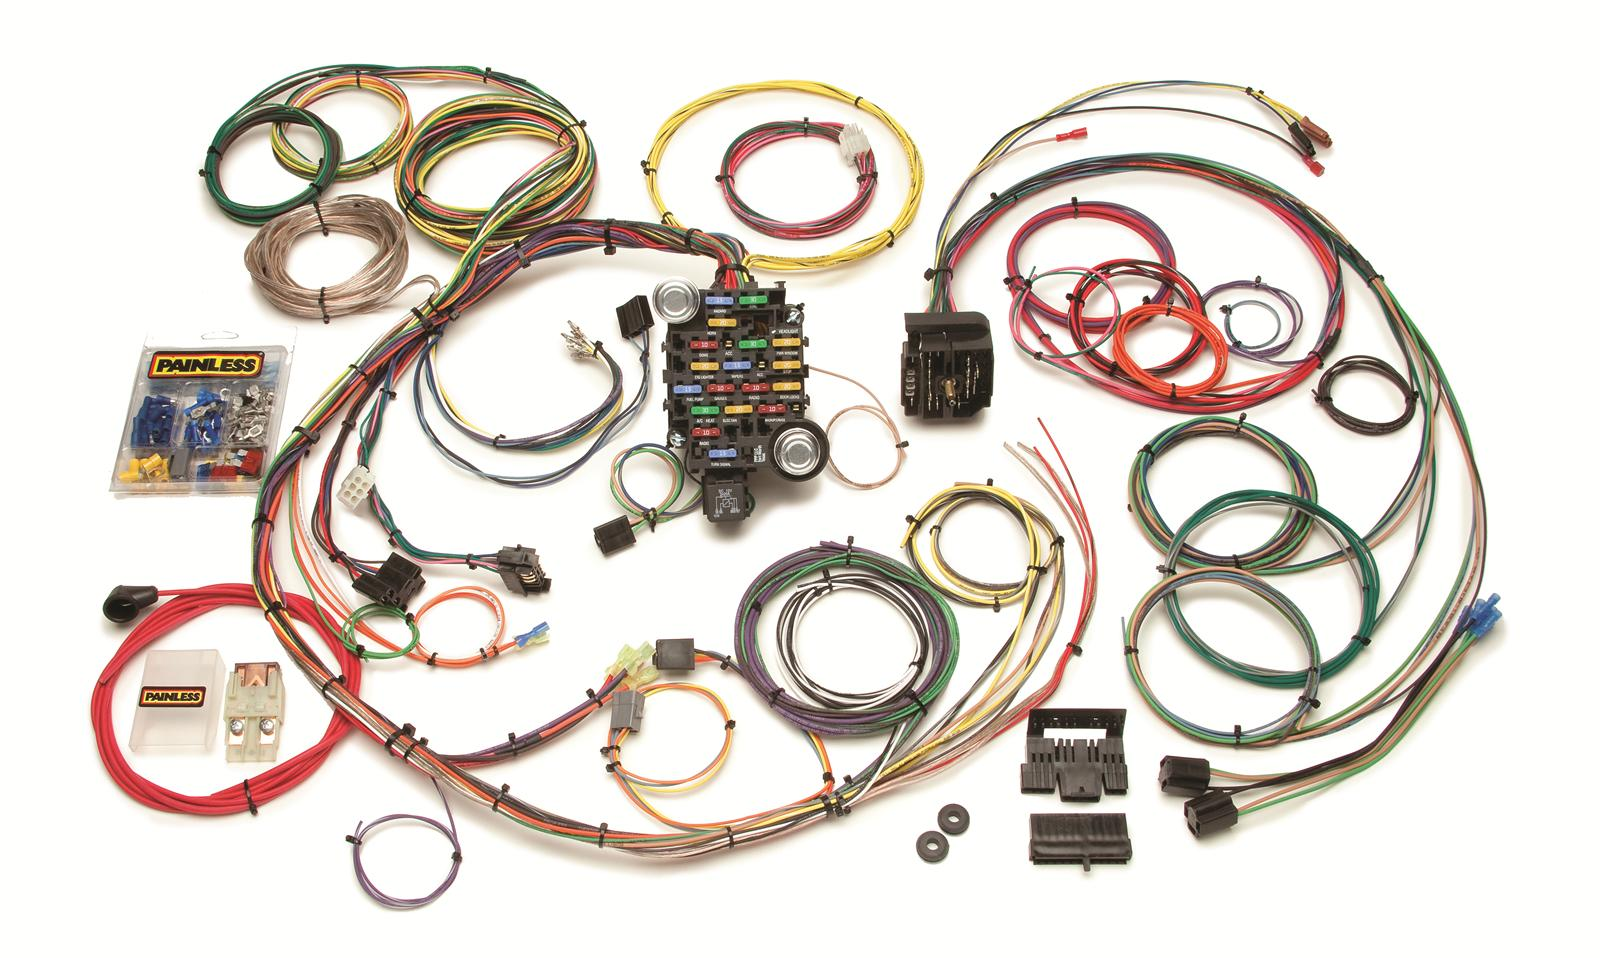 Painless Performance 24 Circuit 1967 68 Camaro And Firebird Harnesses 20101 Fuse Box Parts Free Shipping On Orders Over 99 At Summit Racing